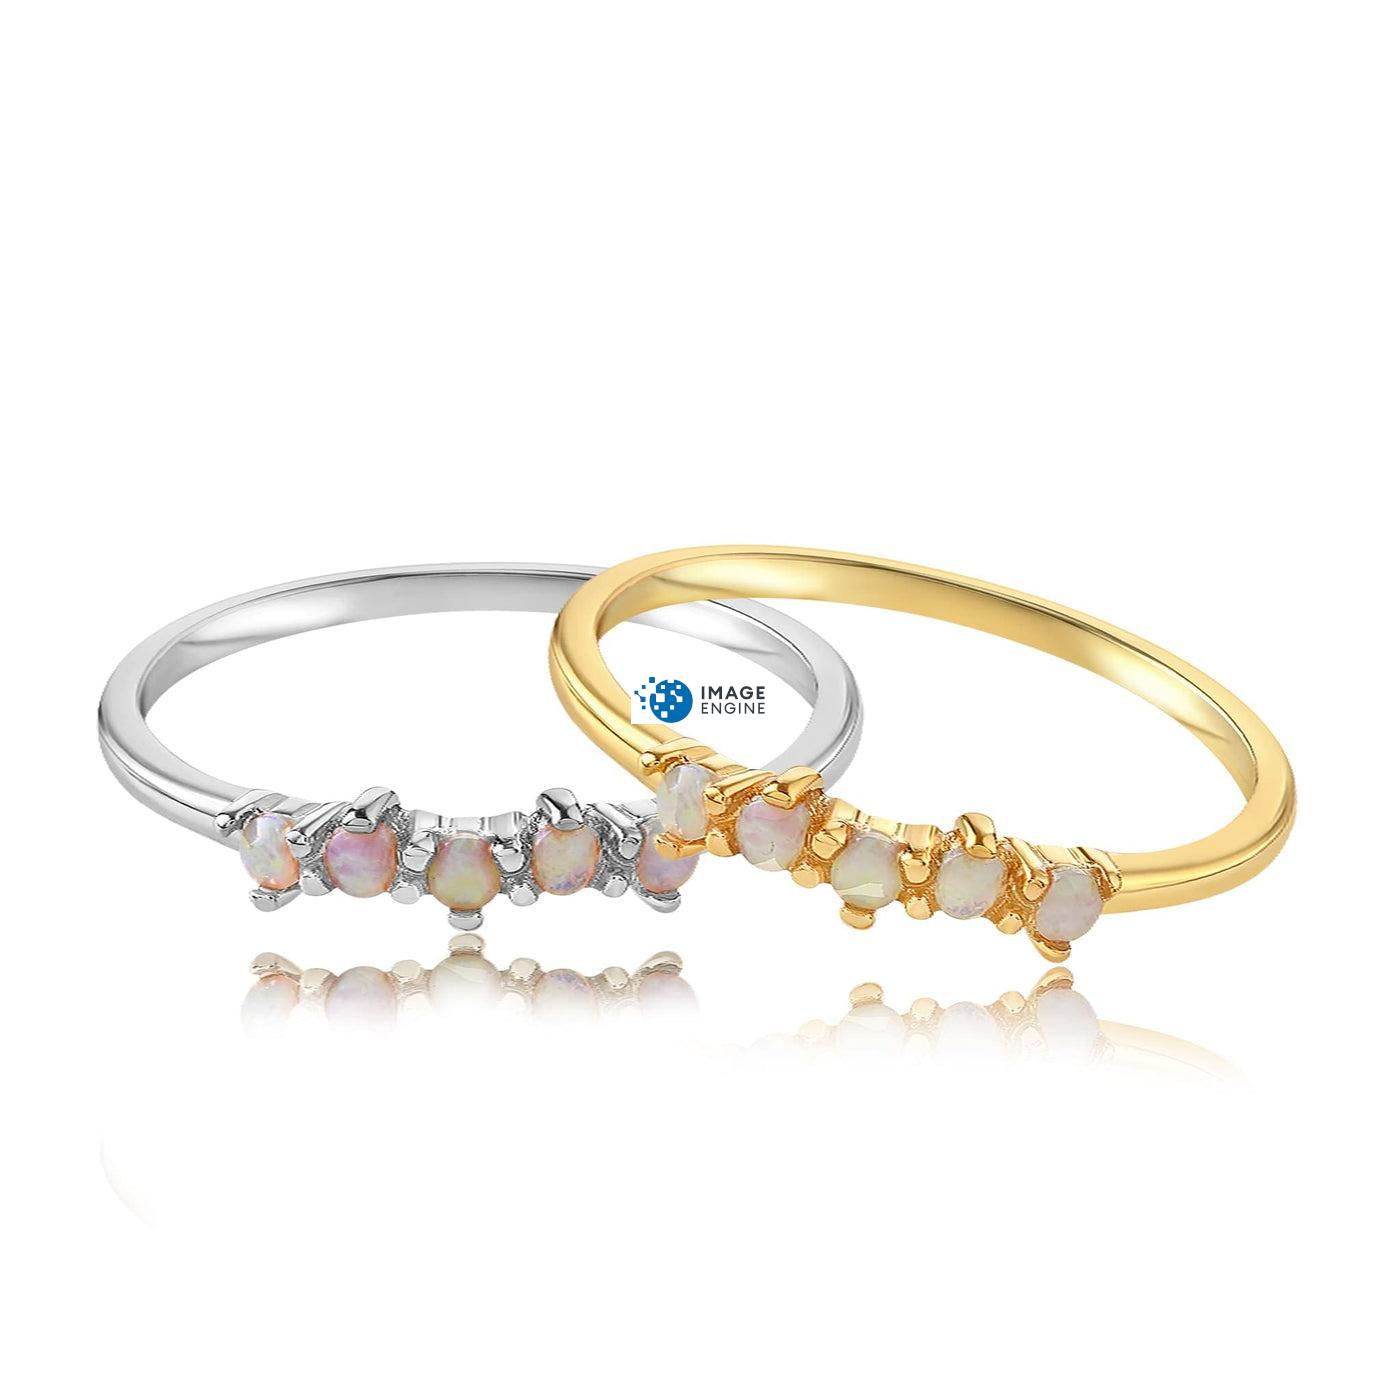 Samantha Simple Dots 5 Opal Ring - Front View Side by Side - 18K Yellow Gold Vermeil and 925 Sterling Silver